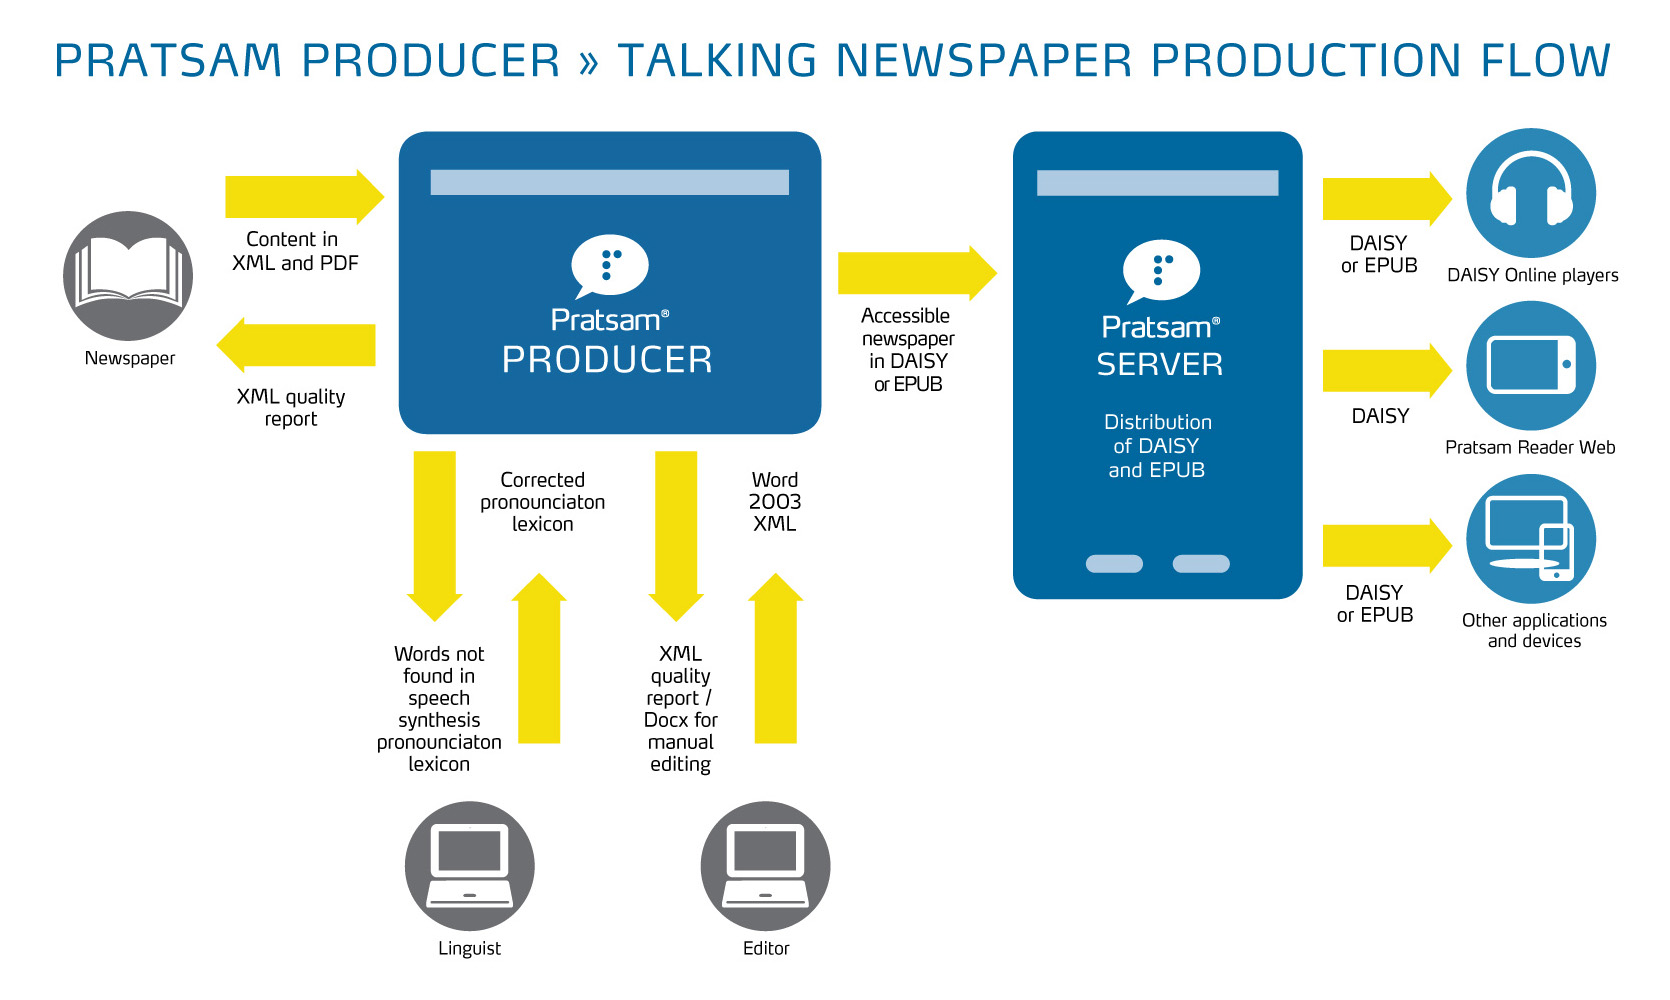 Graphical overview of the usage of Pratsam Producer in relation to accessible newspapers